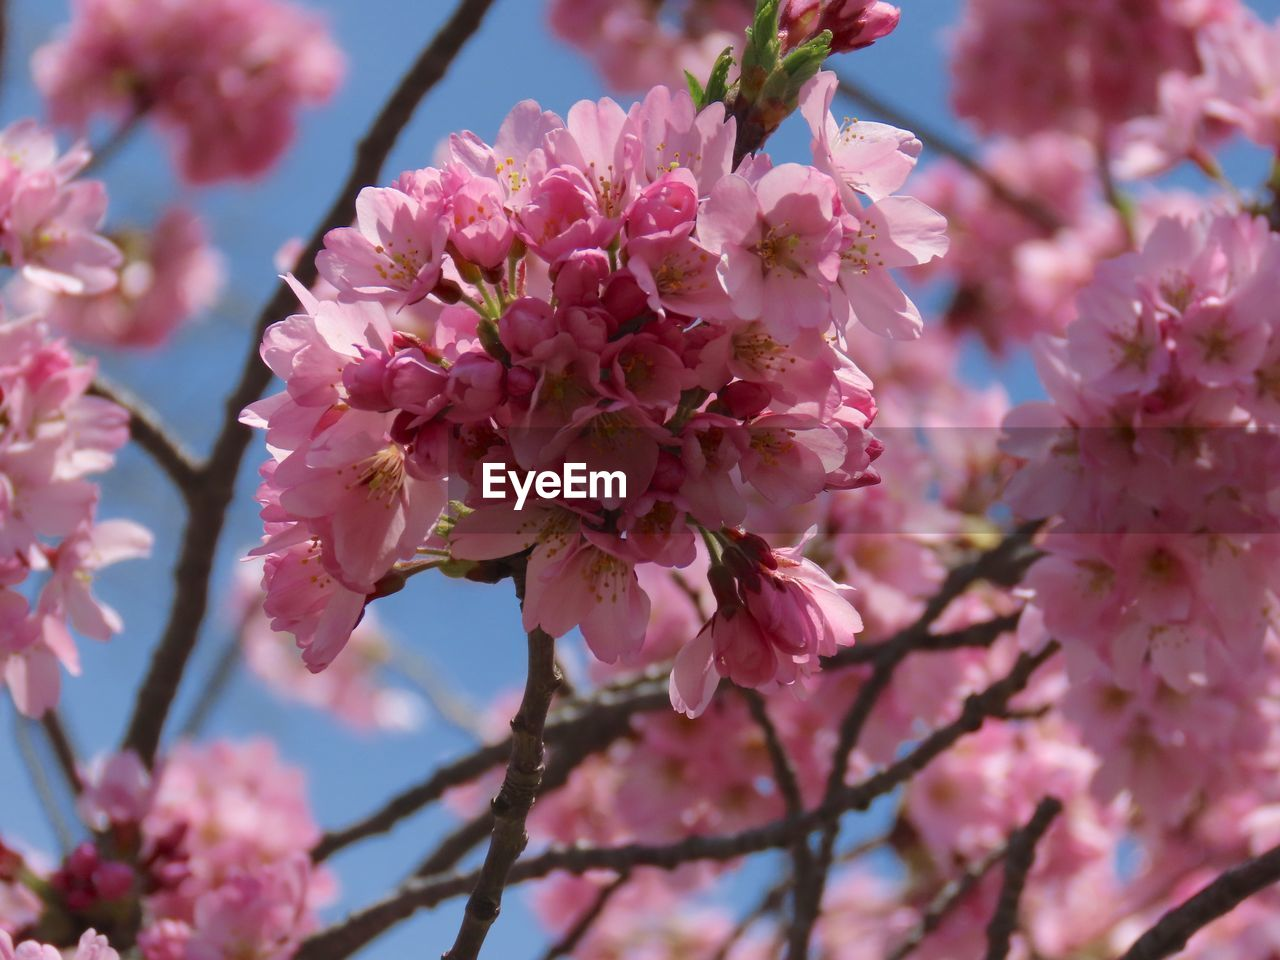 flowering plant, flower, plant, pink color, fragility, growth, freshness, beauty in nature, vulnerability, blossom, tree, springtime, petal, close-up, branch, nature, no people, cherry blossom, day, inflorescence, flower head, cherry tree, outdoors, plum blossom, pollen, spring, bunch of flowers